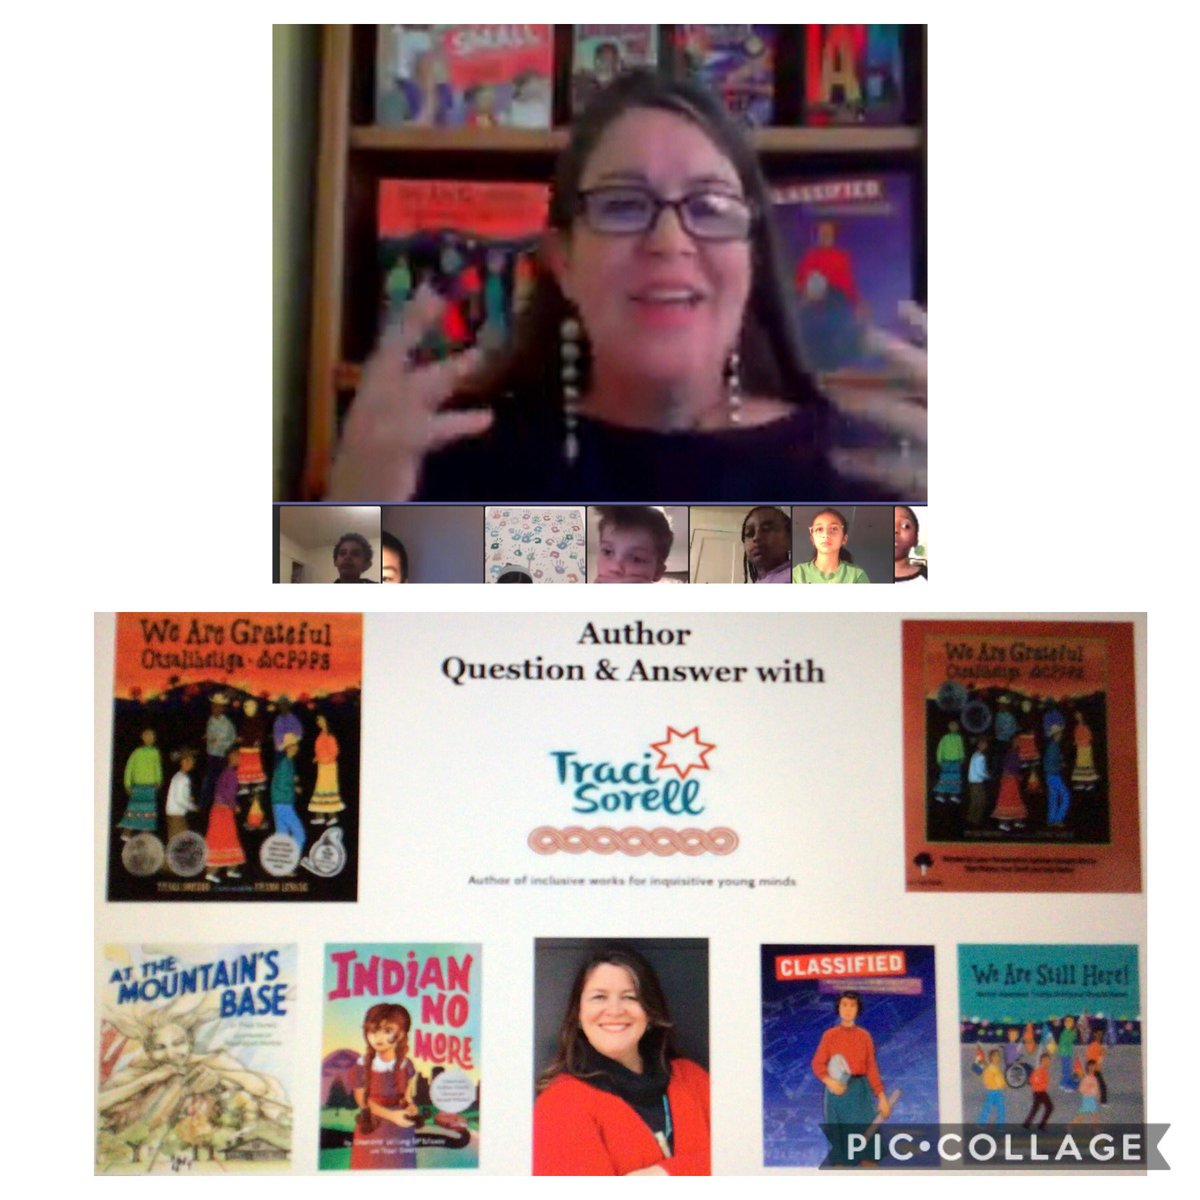 4th and 5th grade Ss ⁦<a target='_blank' href='http://twitter.com/CampbellAPS'>@CampbellAPS</a>⁩ were grateful to hear Traci Sorrell, co- author of the book, Indian No More, which our Community Book Club read to explore identity and equity. ⁦<a target='_blank' href='http://twitter.com/APSLiteracy'>@APSLiteracy</a>⁩ ⁦<a target='_blank' href='http://twitter.com/bibliobunny'>@bibliobunny</a>⁩ ⁦<a target='_blank' href='http://twitter.com/tracisorell'>@tracisorell</a>⁩ ⁦<a target='_blank' href='http://twitter.com/ELeducation'>@ELeducation</a>⁩ <a target='_blank' href='https://t.co/KegX7mU9G5'>https://t.co/KegX7mU9G5</a>